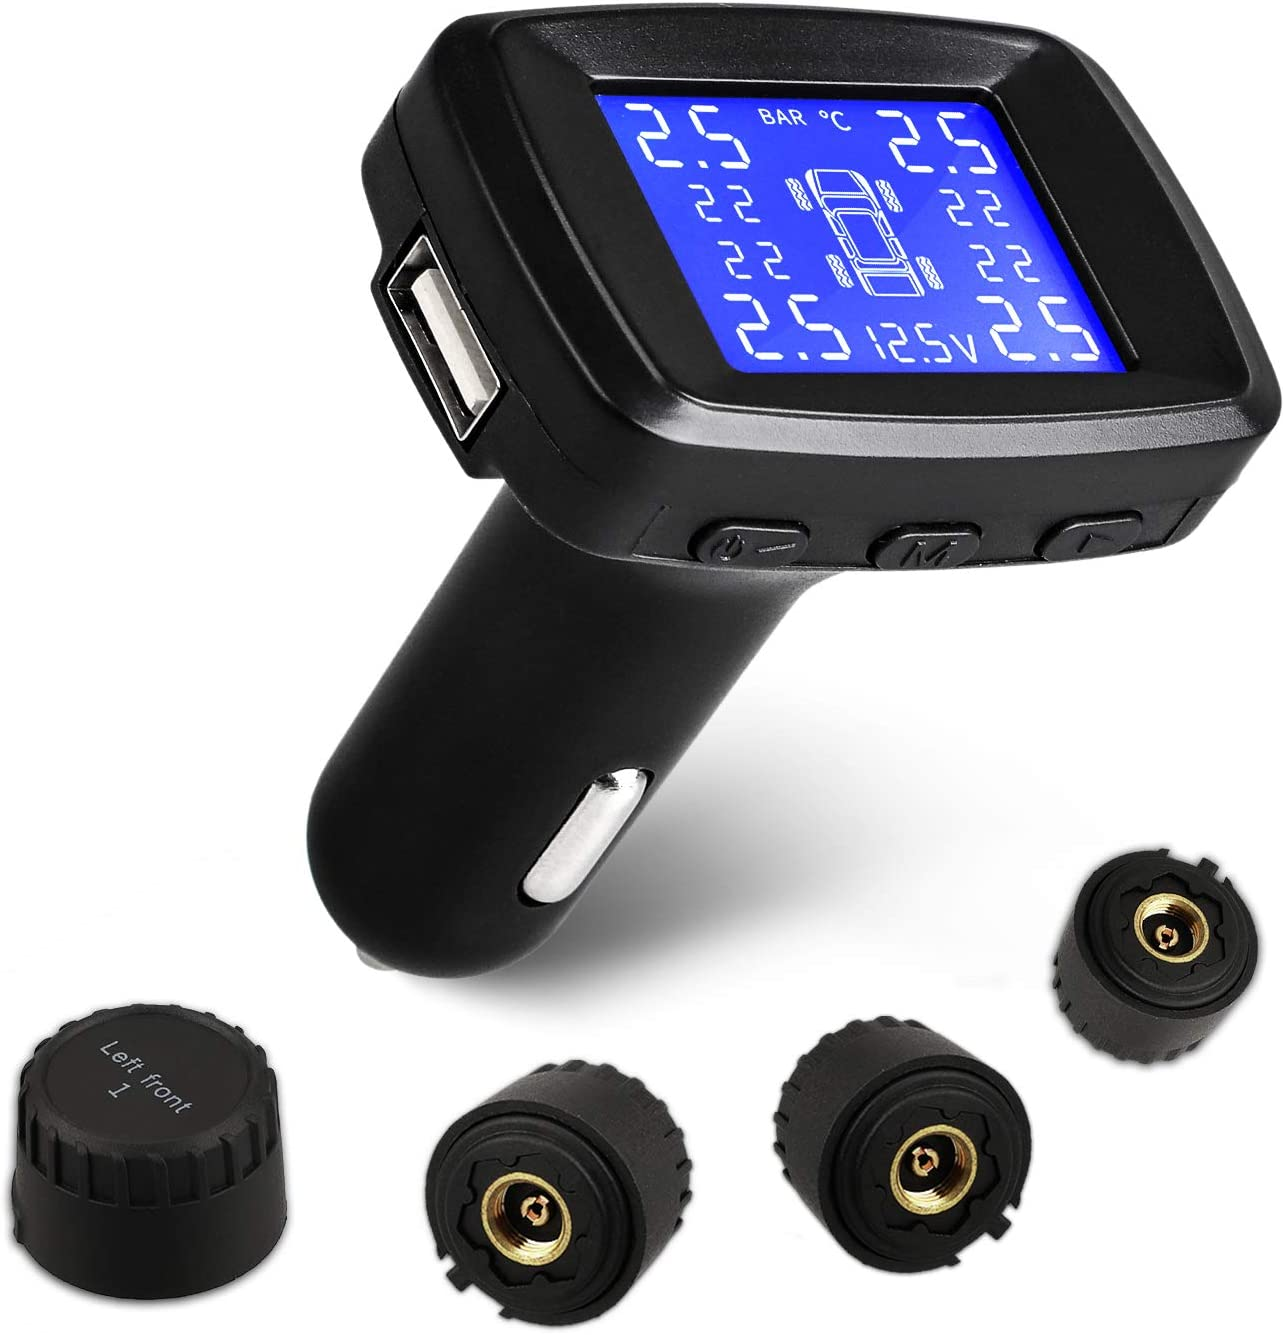 6 Alarm Modes Universal Solar and USB Power Remote TPMS with 4 External Cap Sensors /& 4 Battery OTUAYAUTO Wireless Tire Pressure Monitoring System Real Time Pressure /& Temperature Alerts